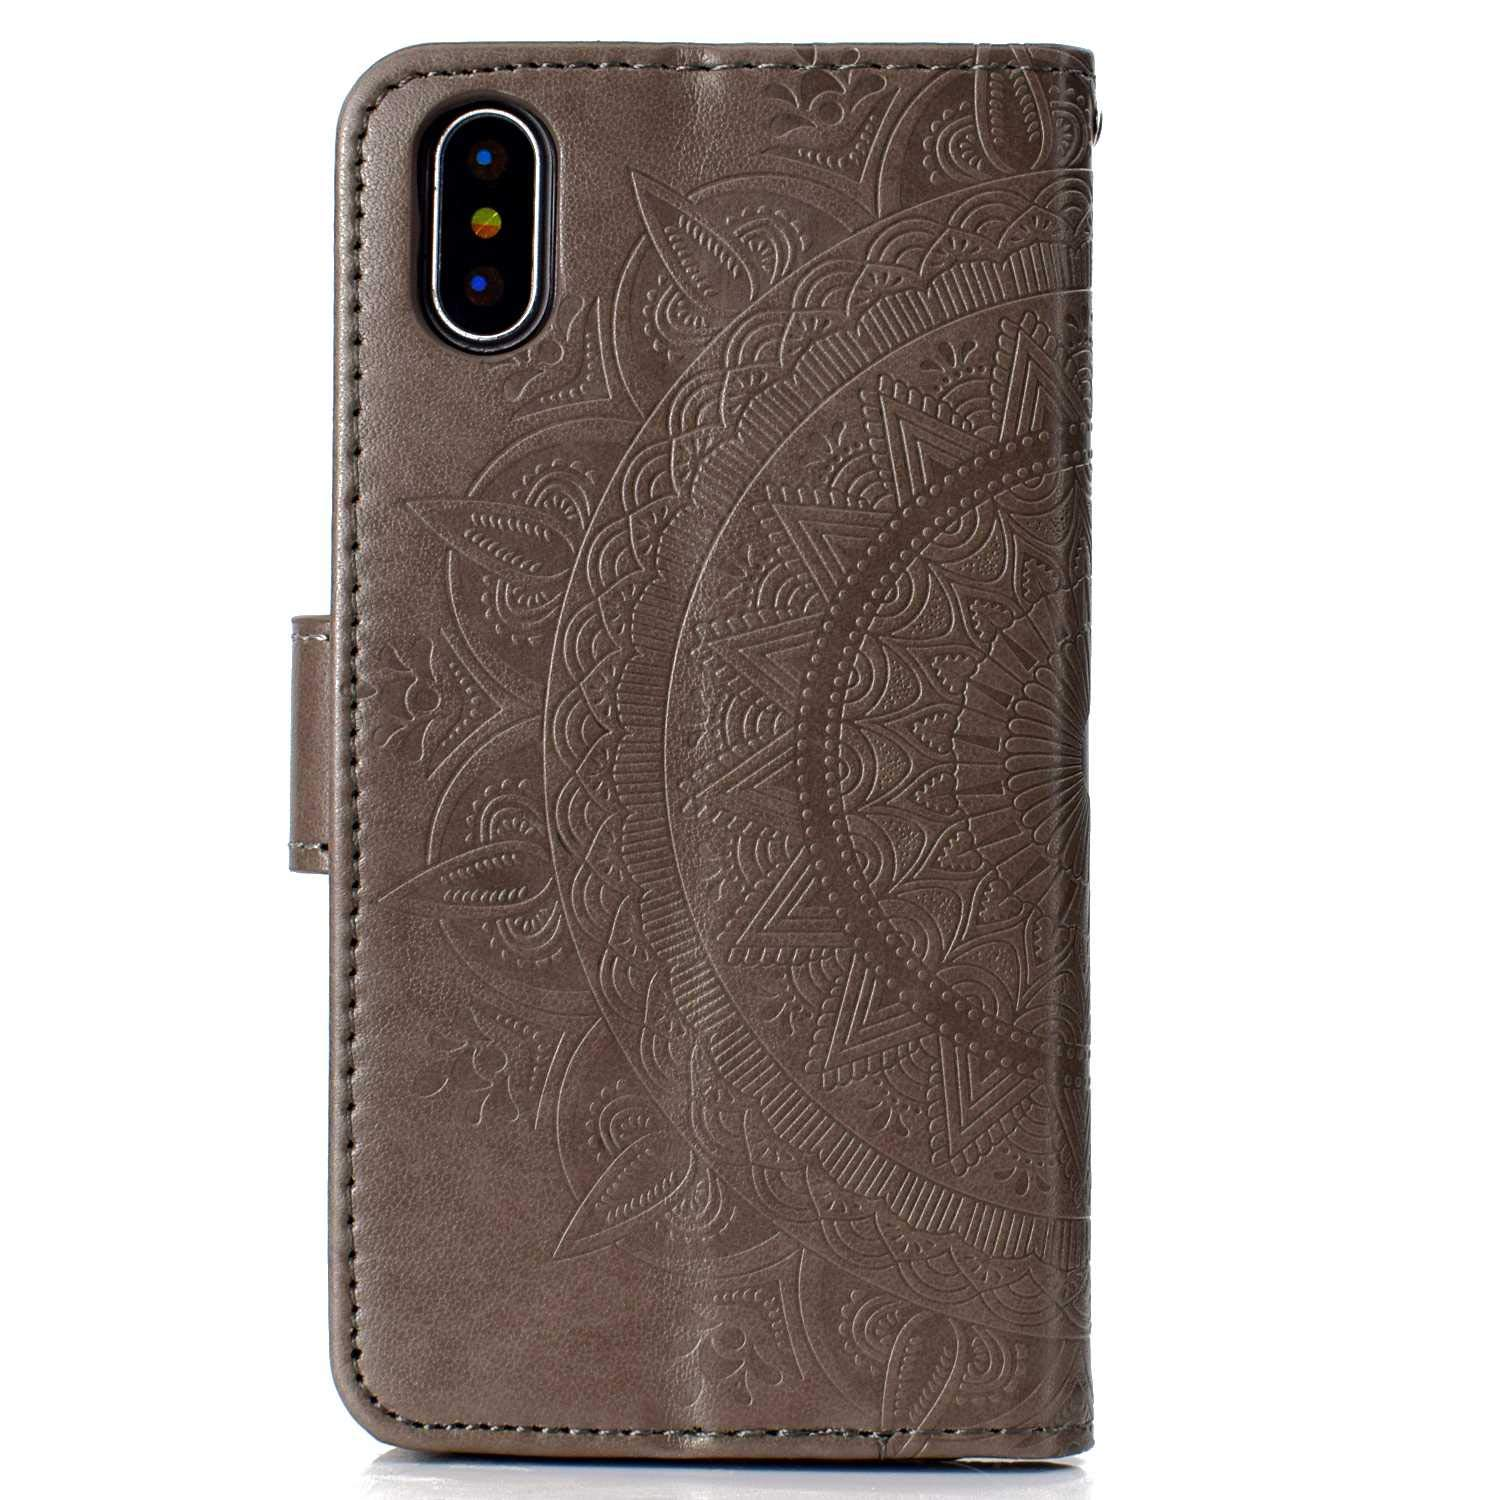 Case iPhone X/Xs, Bear Village PU Leather Embossed Design Case with Card Holder and ID Slot, Wallet Flip Stand Cover for Apple iPhone X/iPhone Xs (#6 Gray) by Bear Village (Image #2)